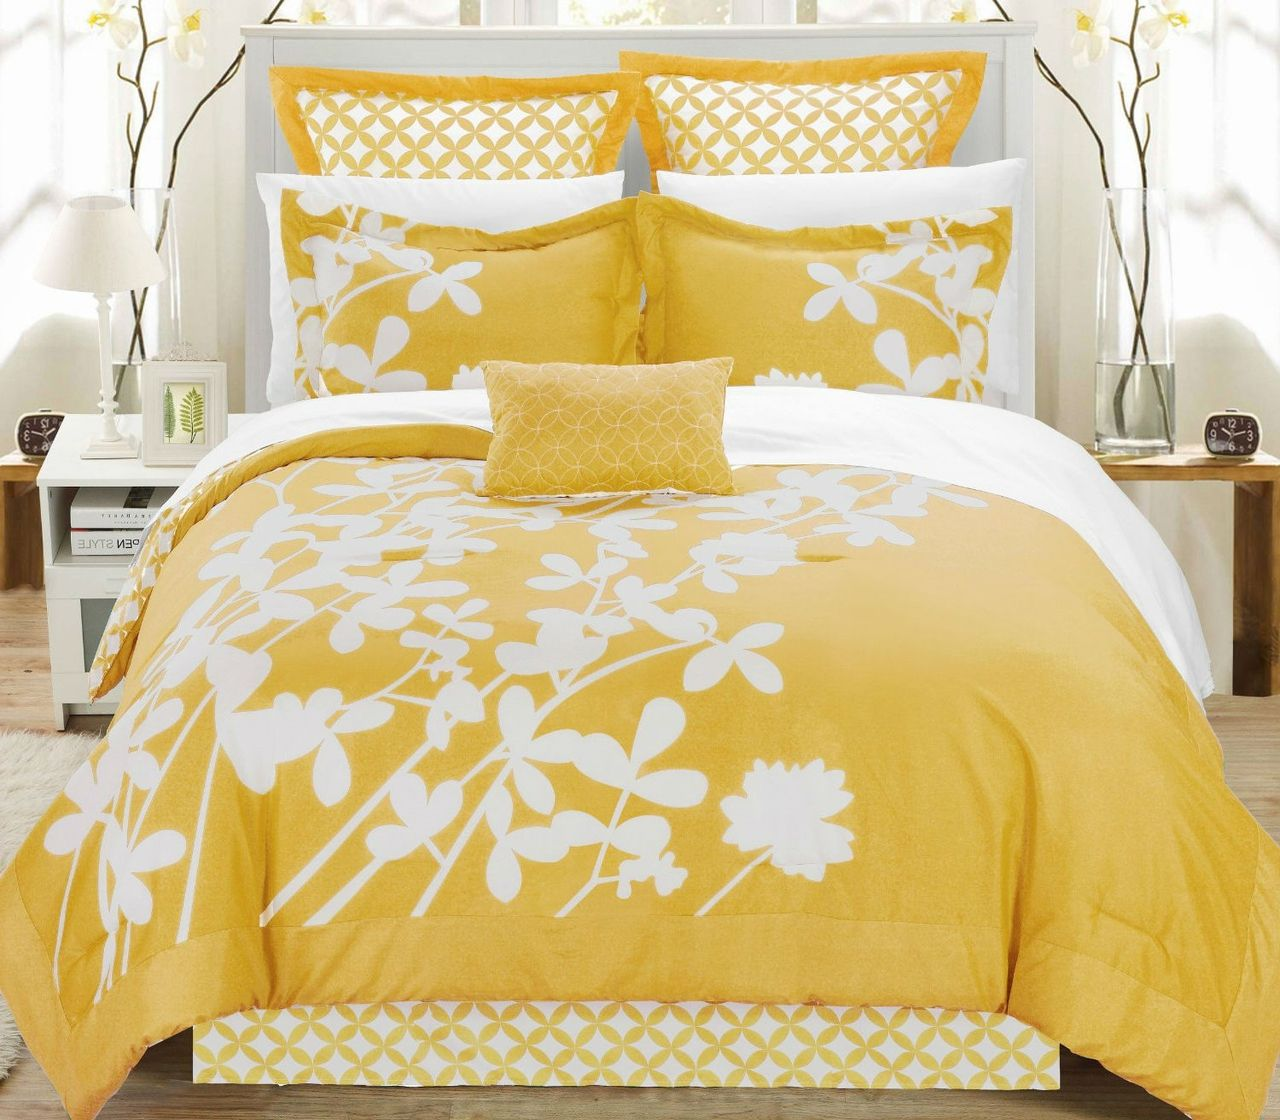 Queen Yellow 7 Piece Floral Bed In A Bag Comforter Set With